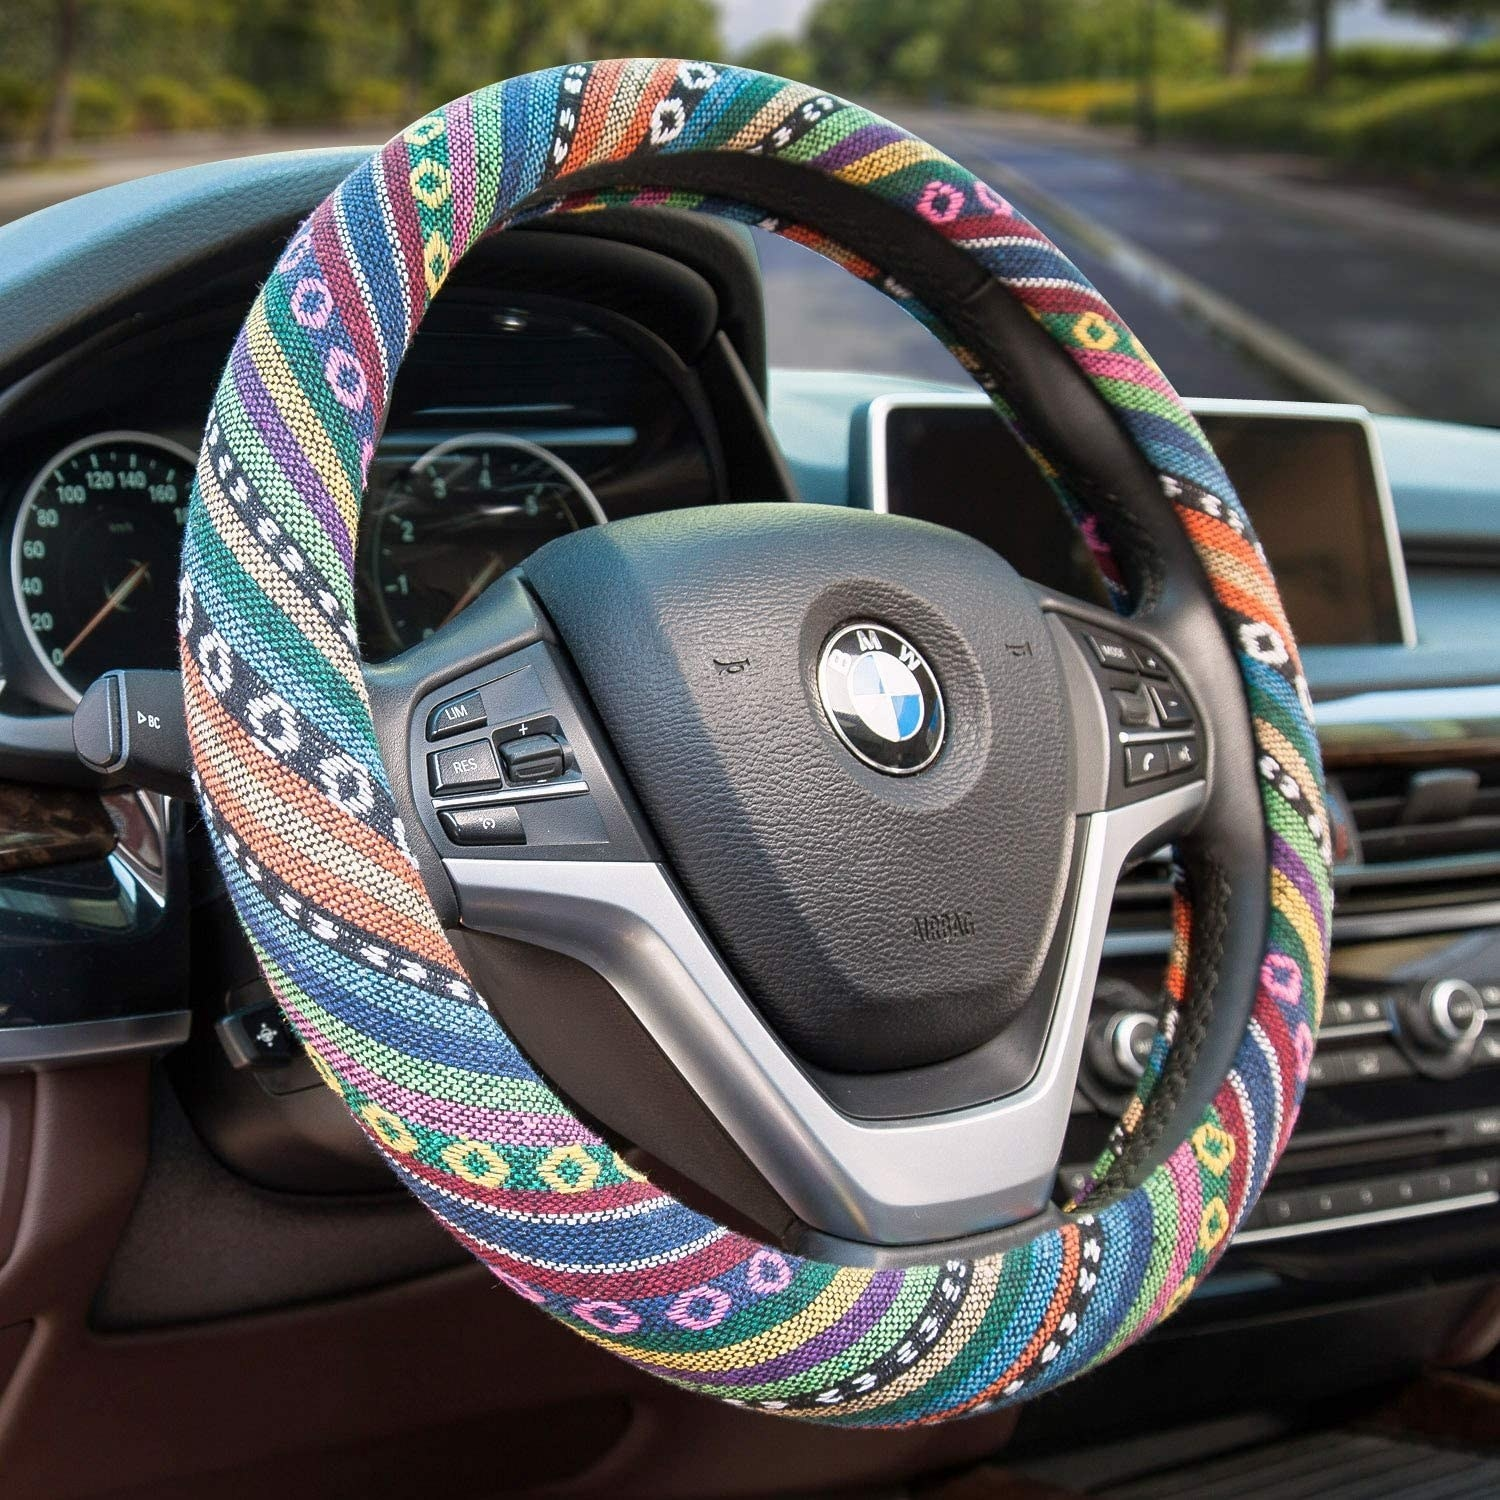 the multicolored cover on a steering wheel